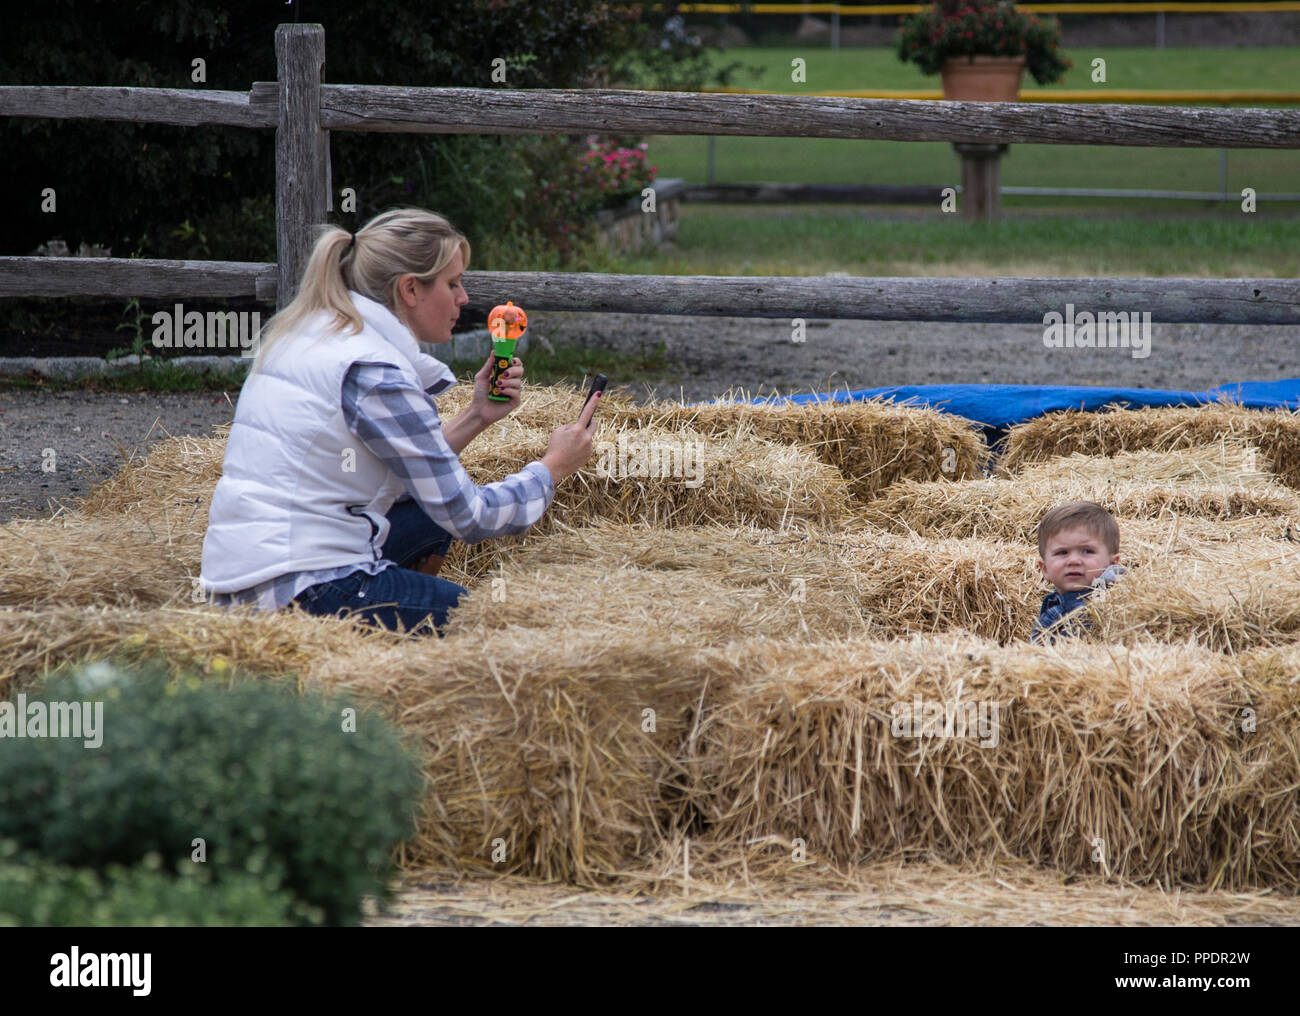 Mother taking a cellphone picture of her son surrounded by bales of hay - Stock Image